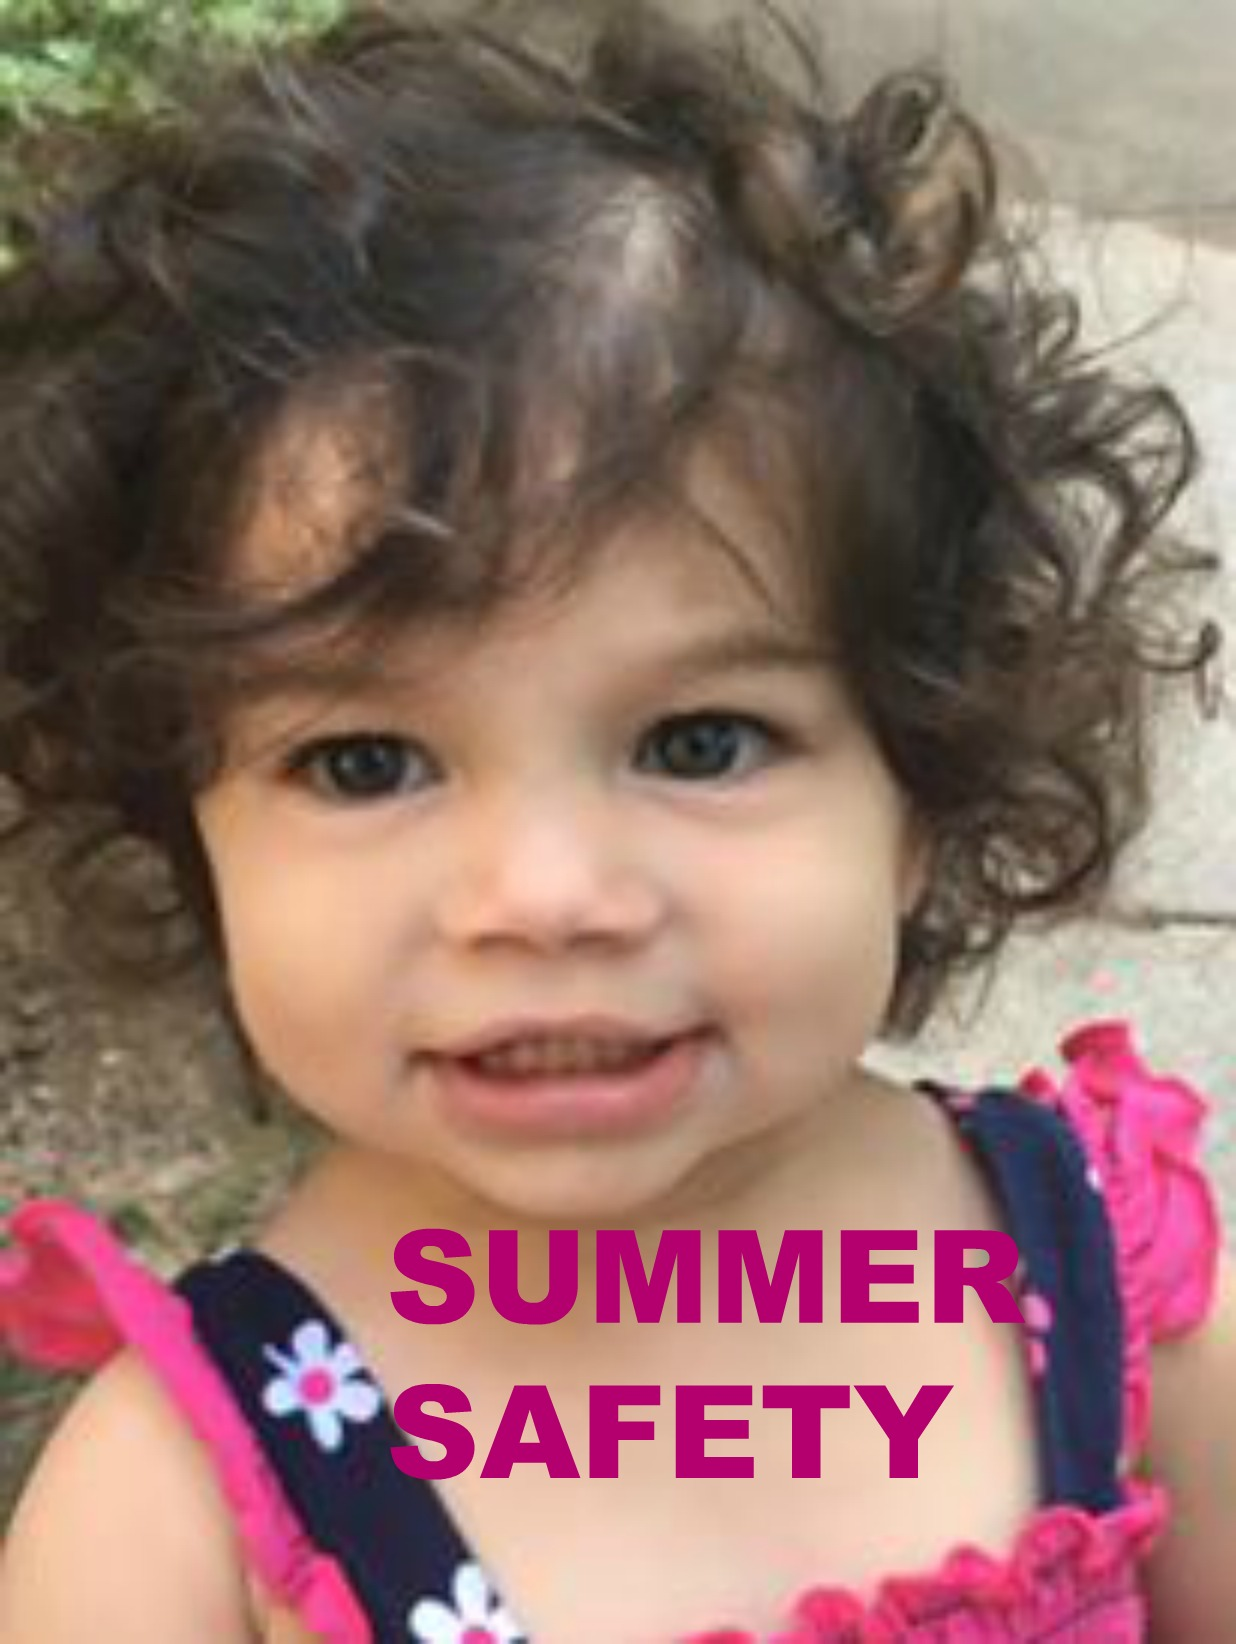 13516528 10154245373594356 4228171220112450466 n Summer Safety for Kids!